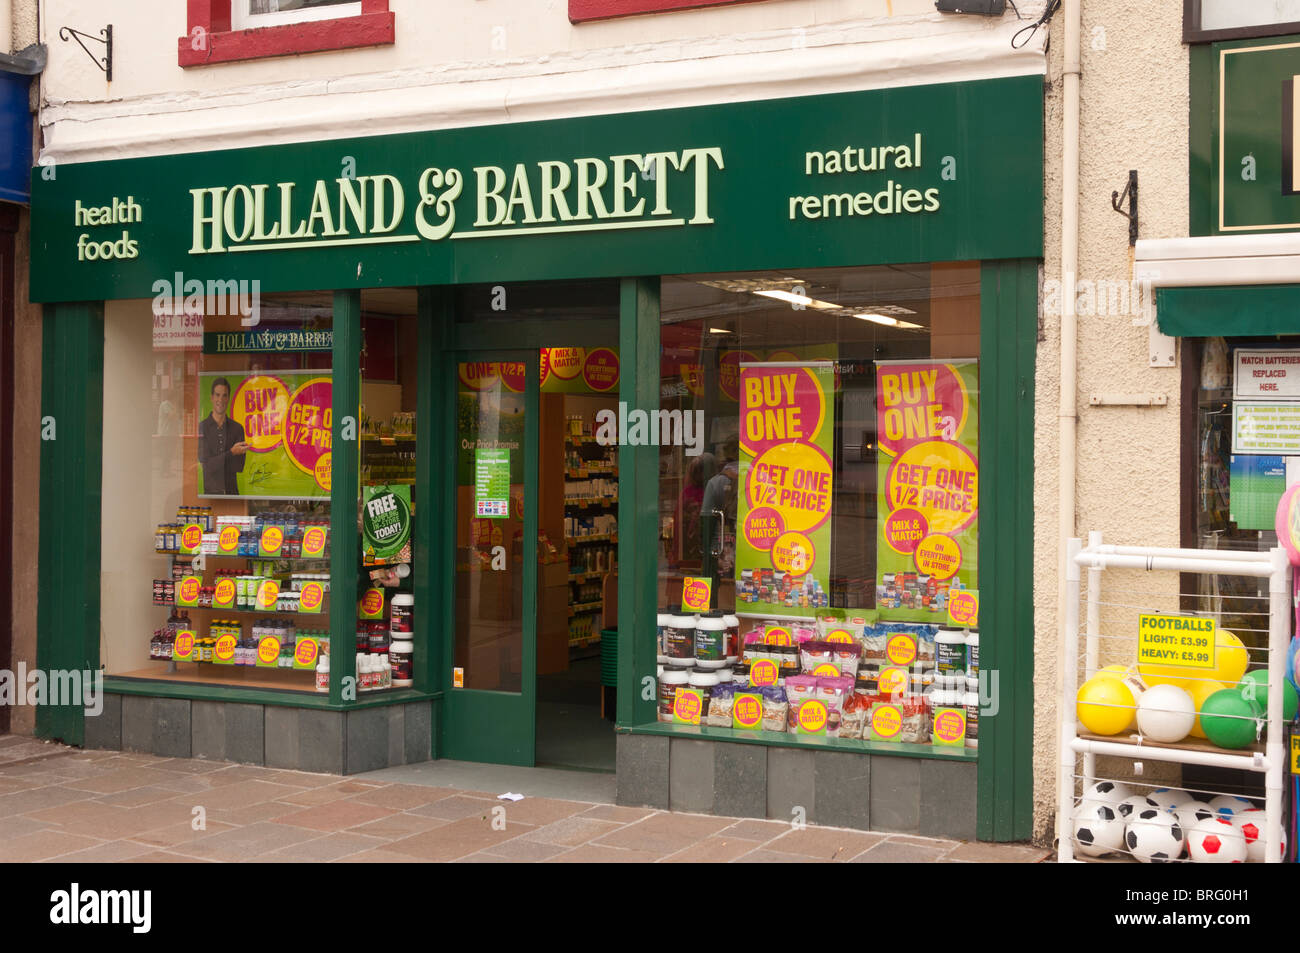 Health Food Shop Uk Stock Photos Health Food Shop Uk Stock pertaining to Health Food Shop